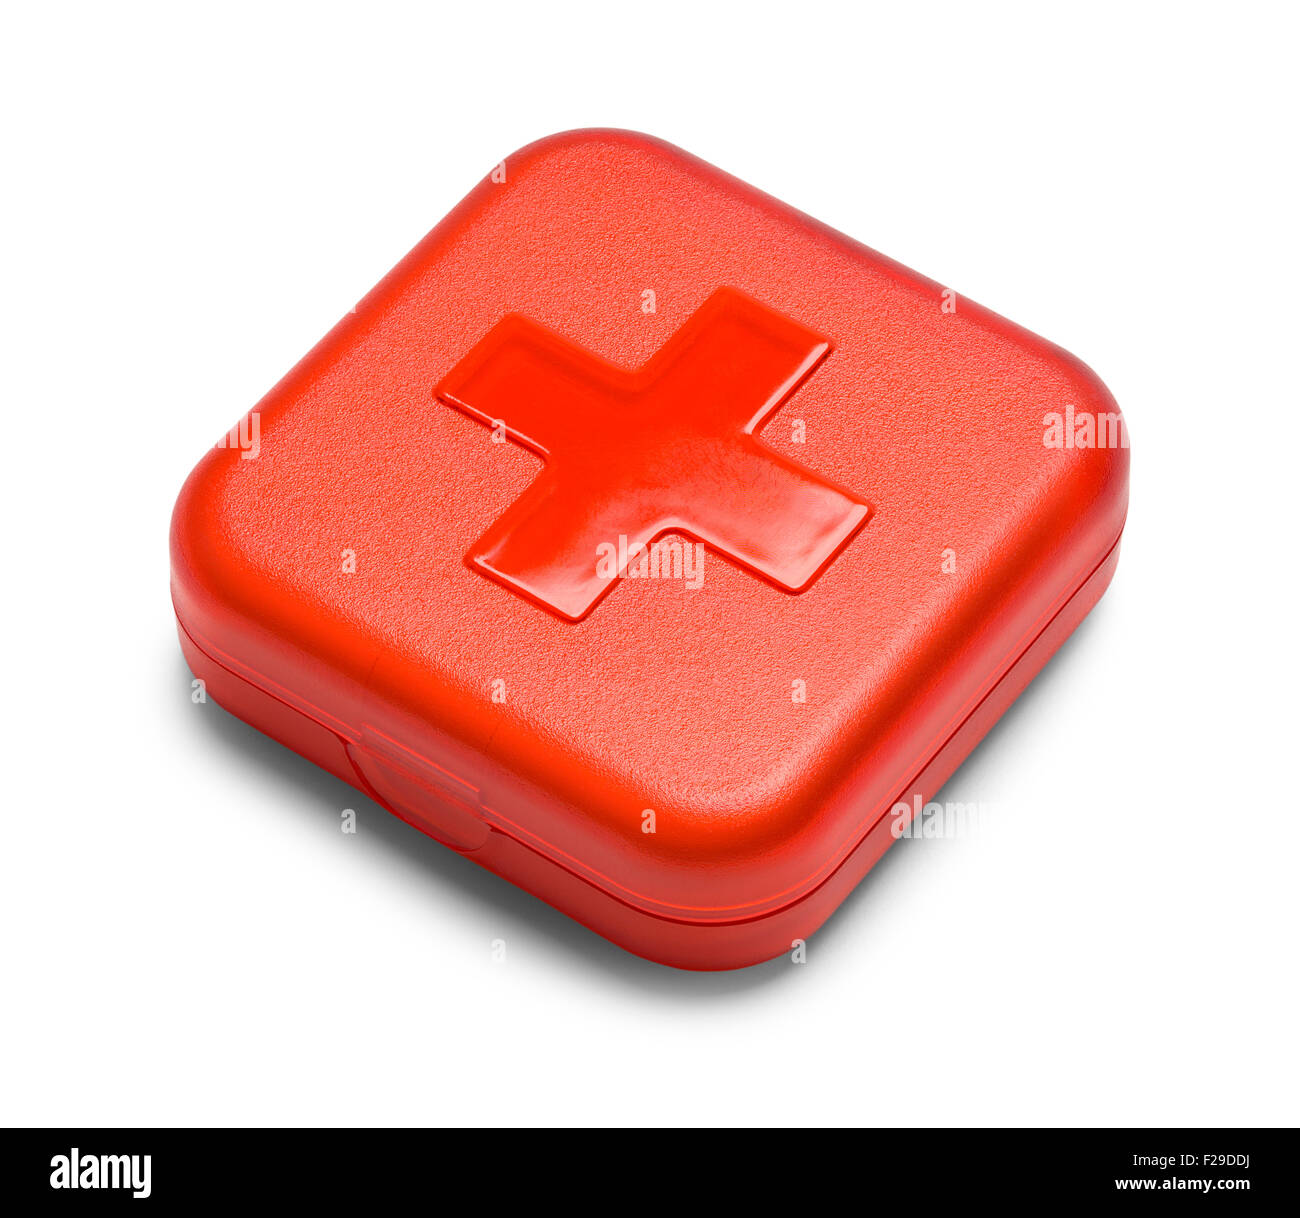 Red Square First Aid Kit Isolated on White Background. - Stock Image